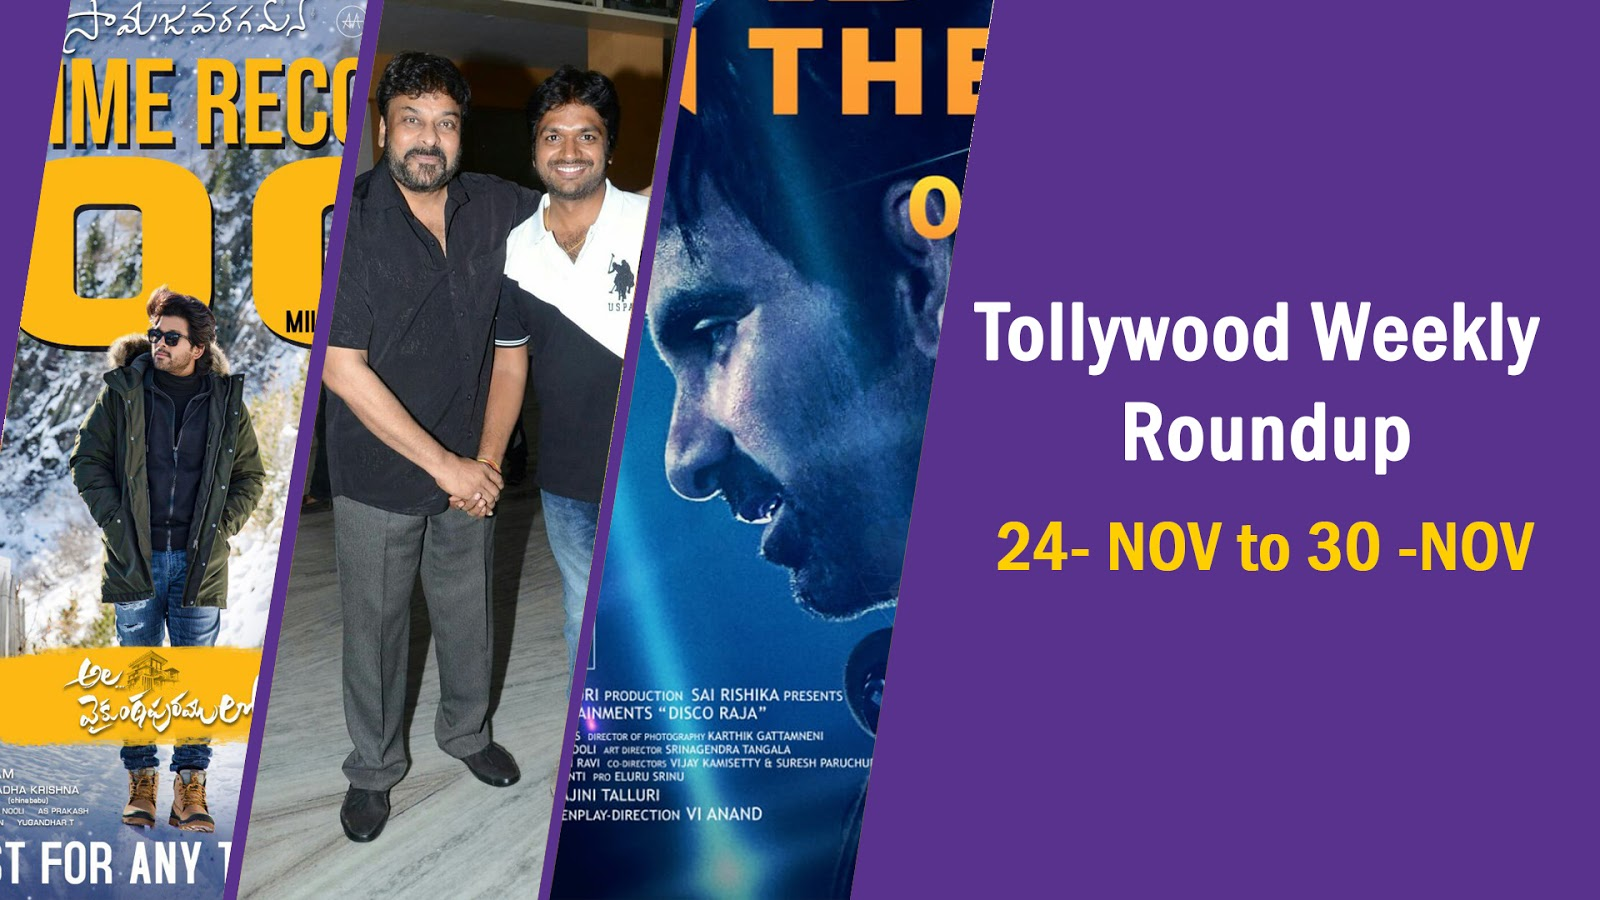 Tollywood Weekly Roundup - 24-Nov to 30-Nov